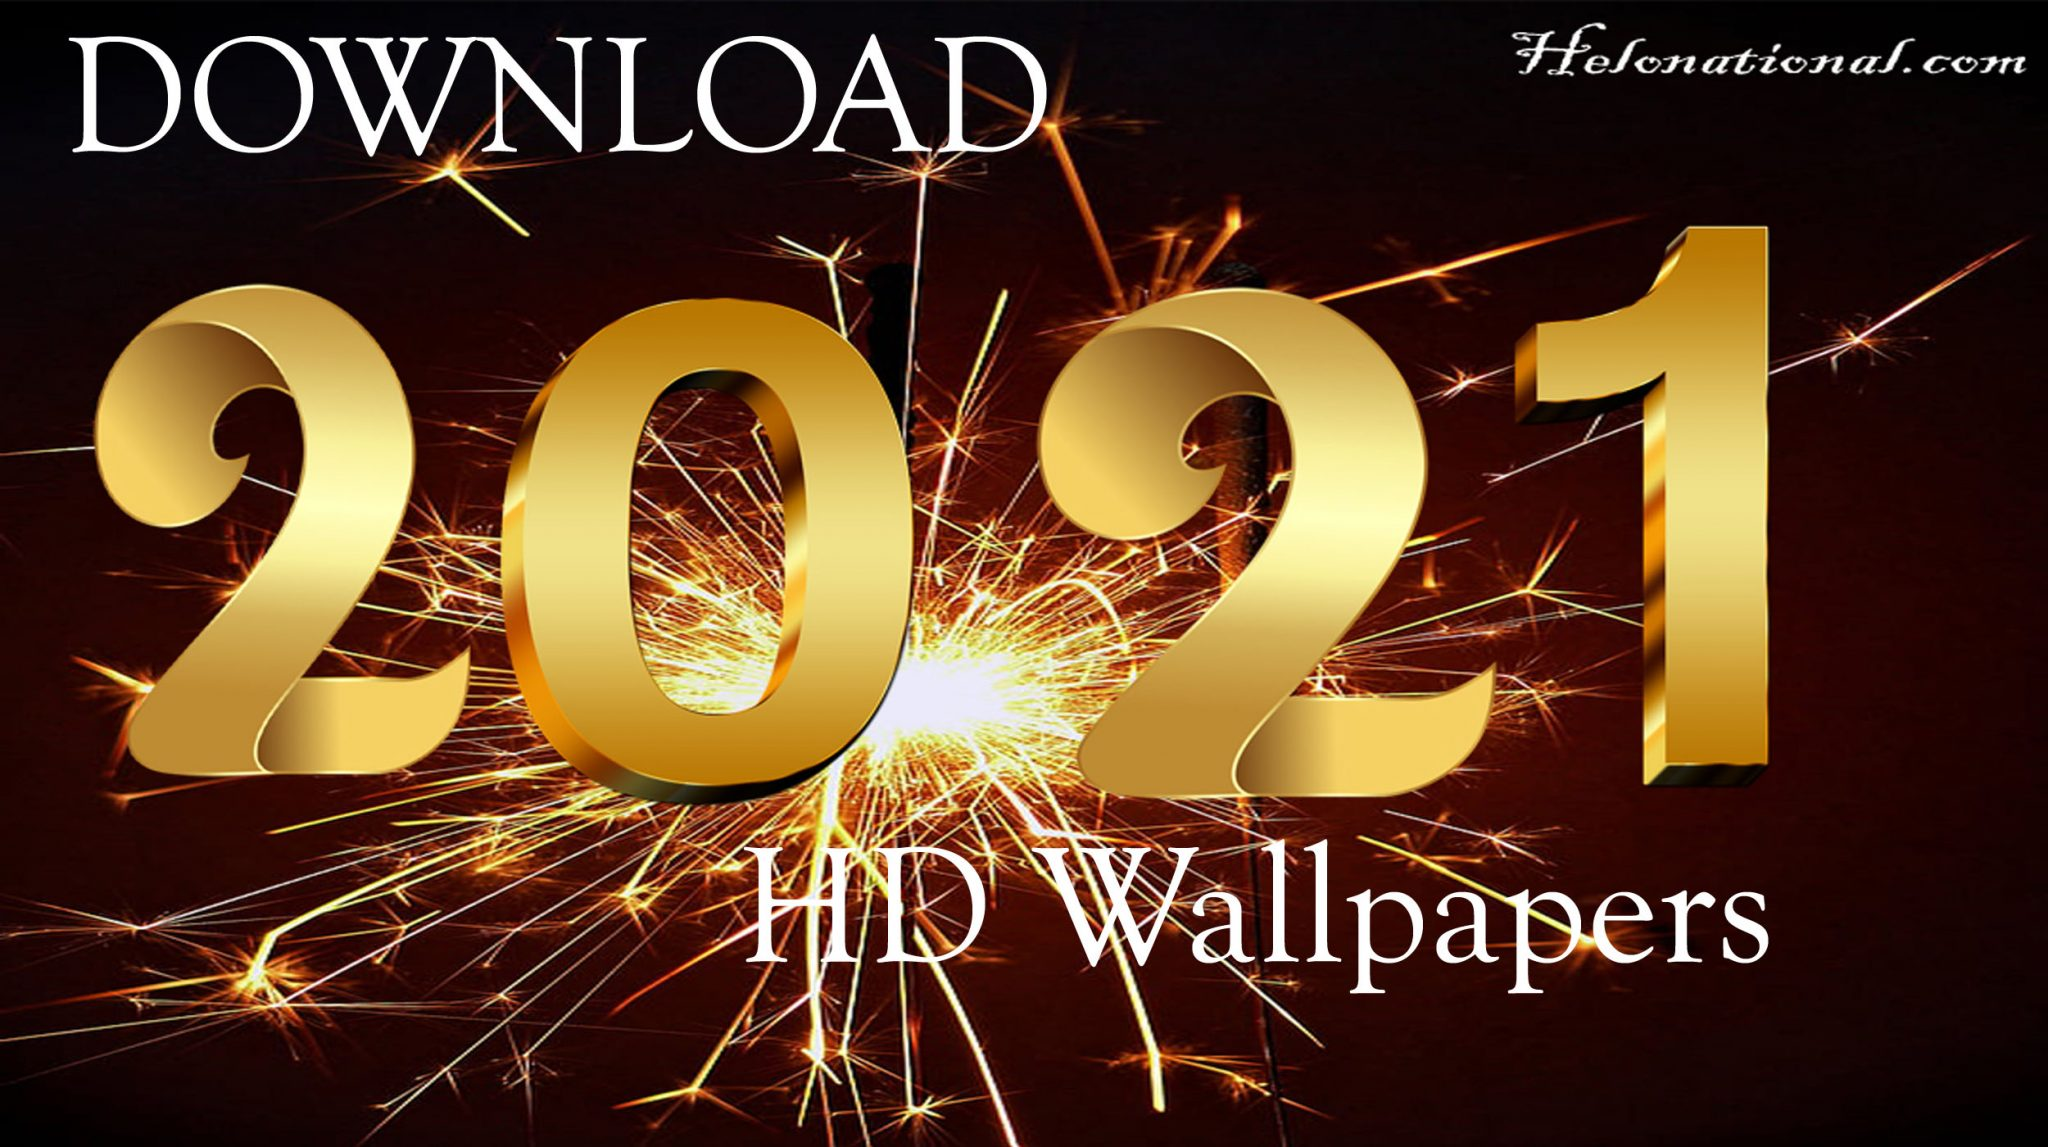 Download Hd New Year 2021 Wallpapers Hny 2021 Wallpapers